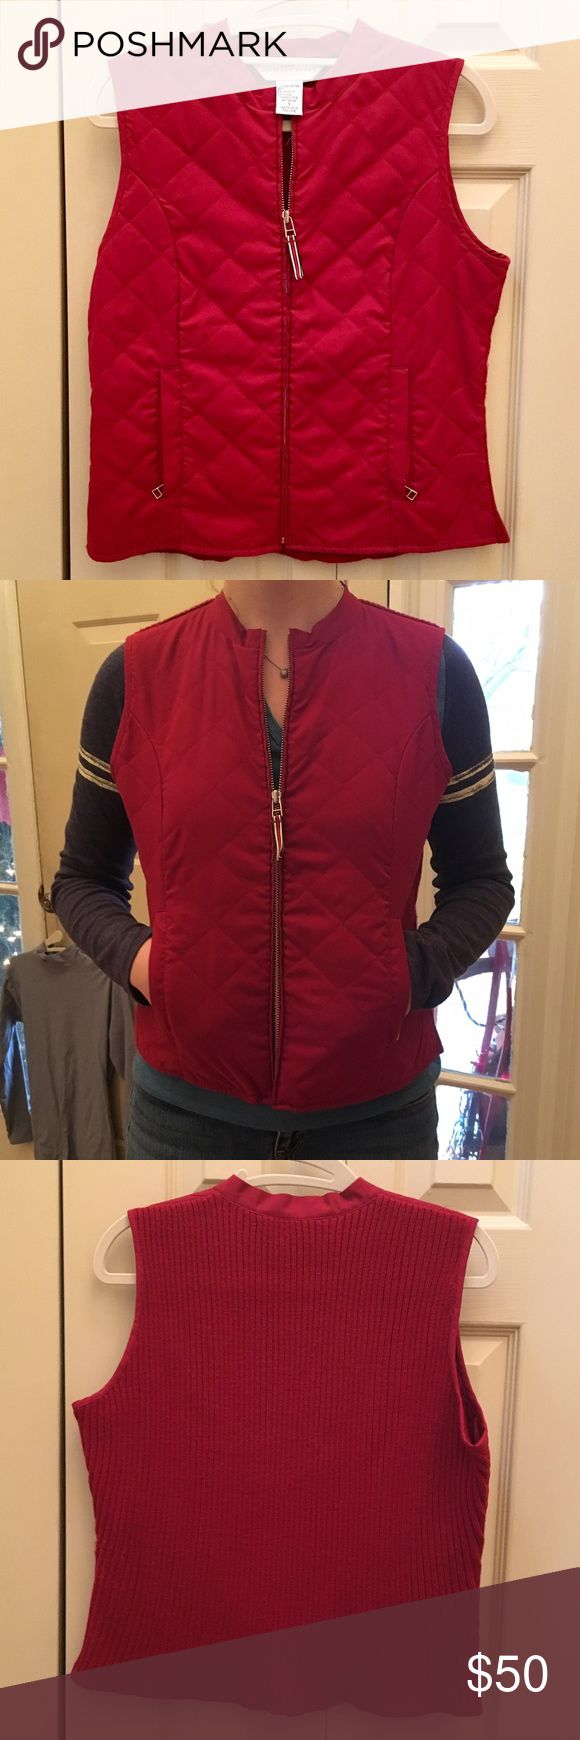 Selling this NWOT Red Geoffrey Beene Sport Vest on Poshmark! My username is: caity_mac. #shopmycloset #poshmark #fashion #shopping #style #forsale #Geoffrey Beene #Jackets & Blazers